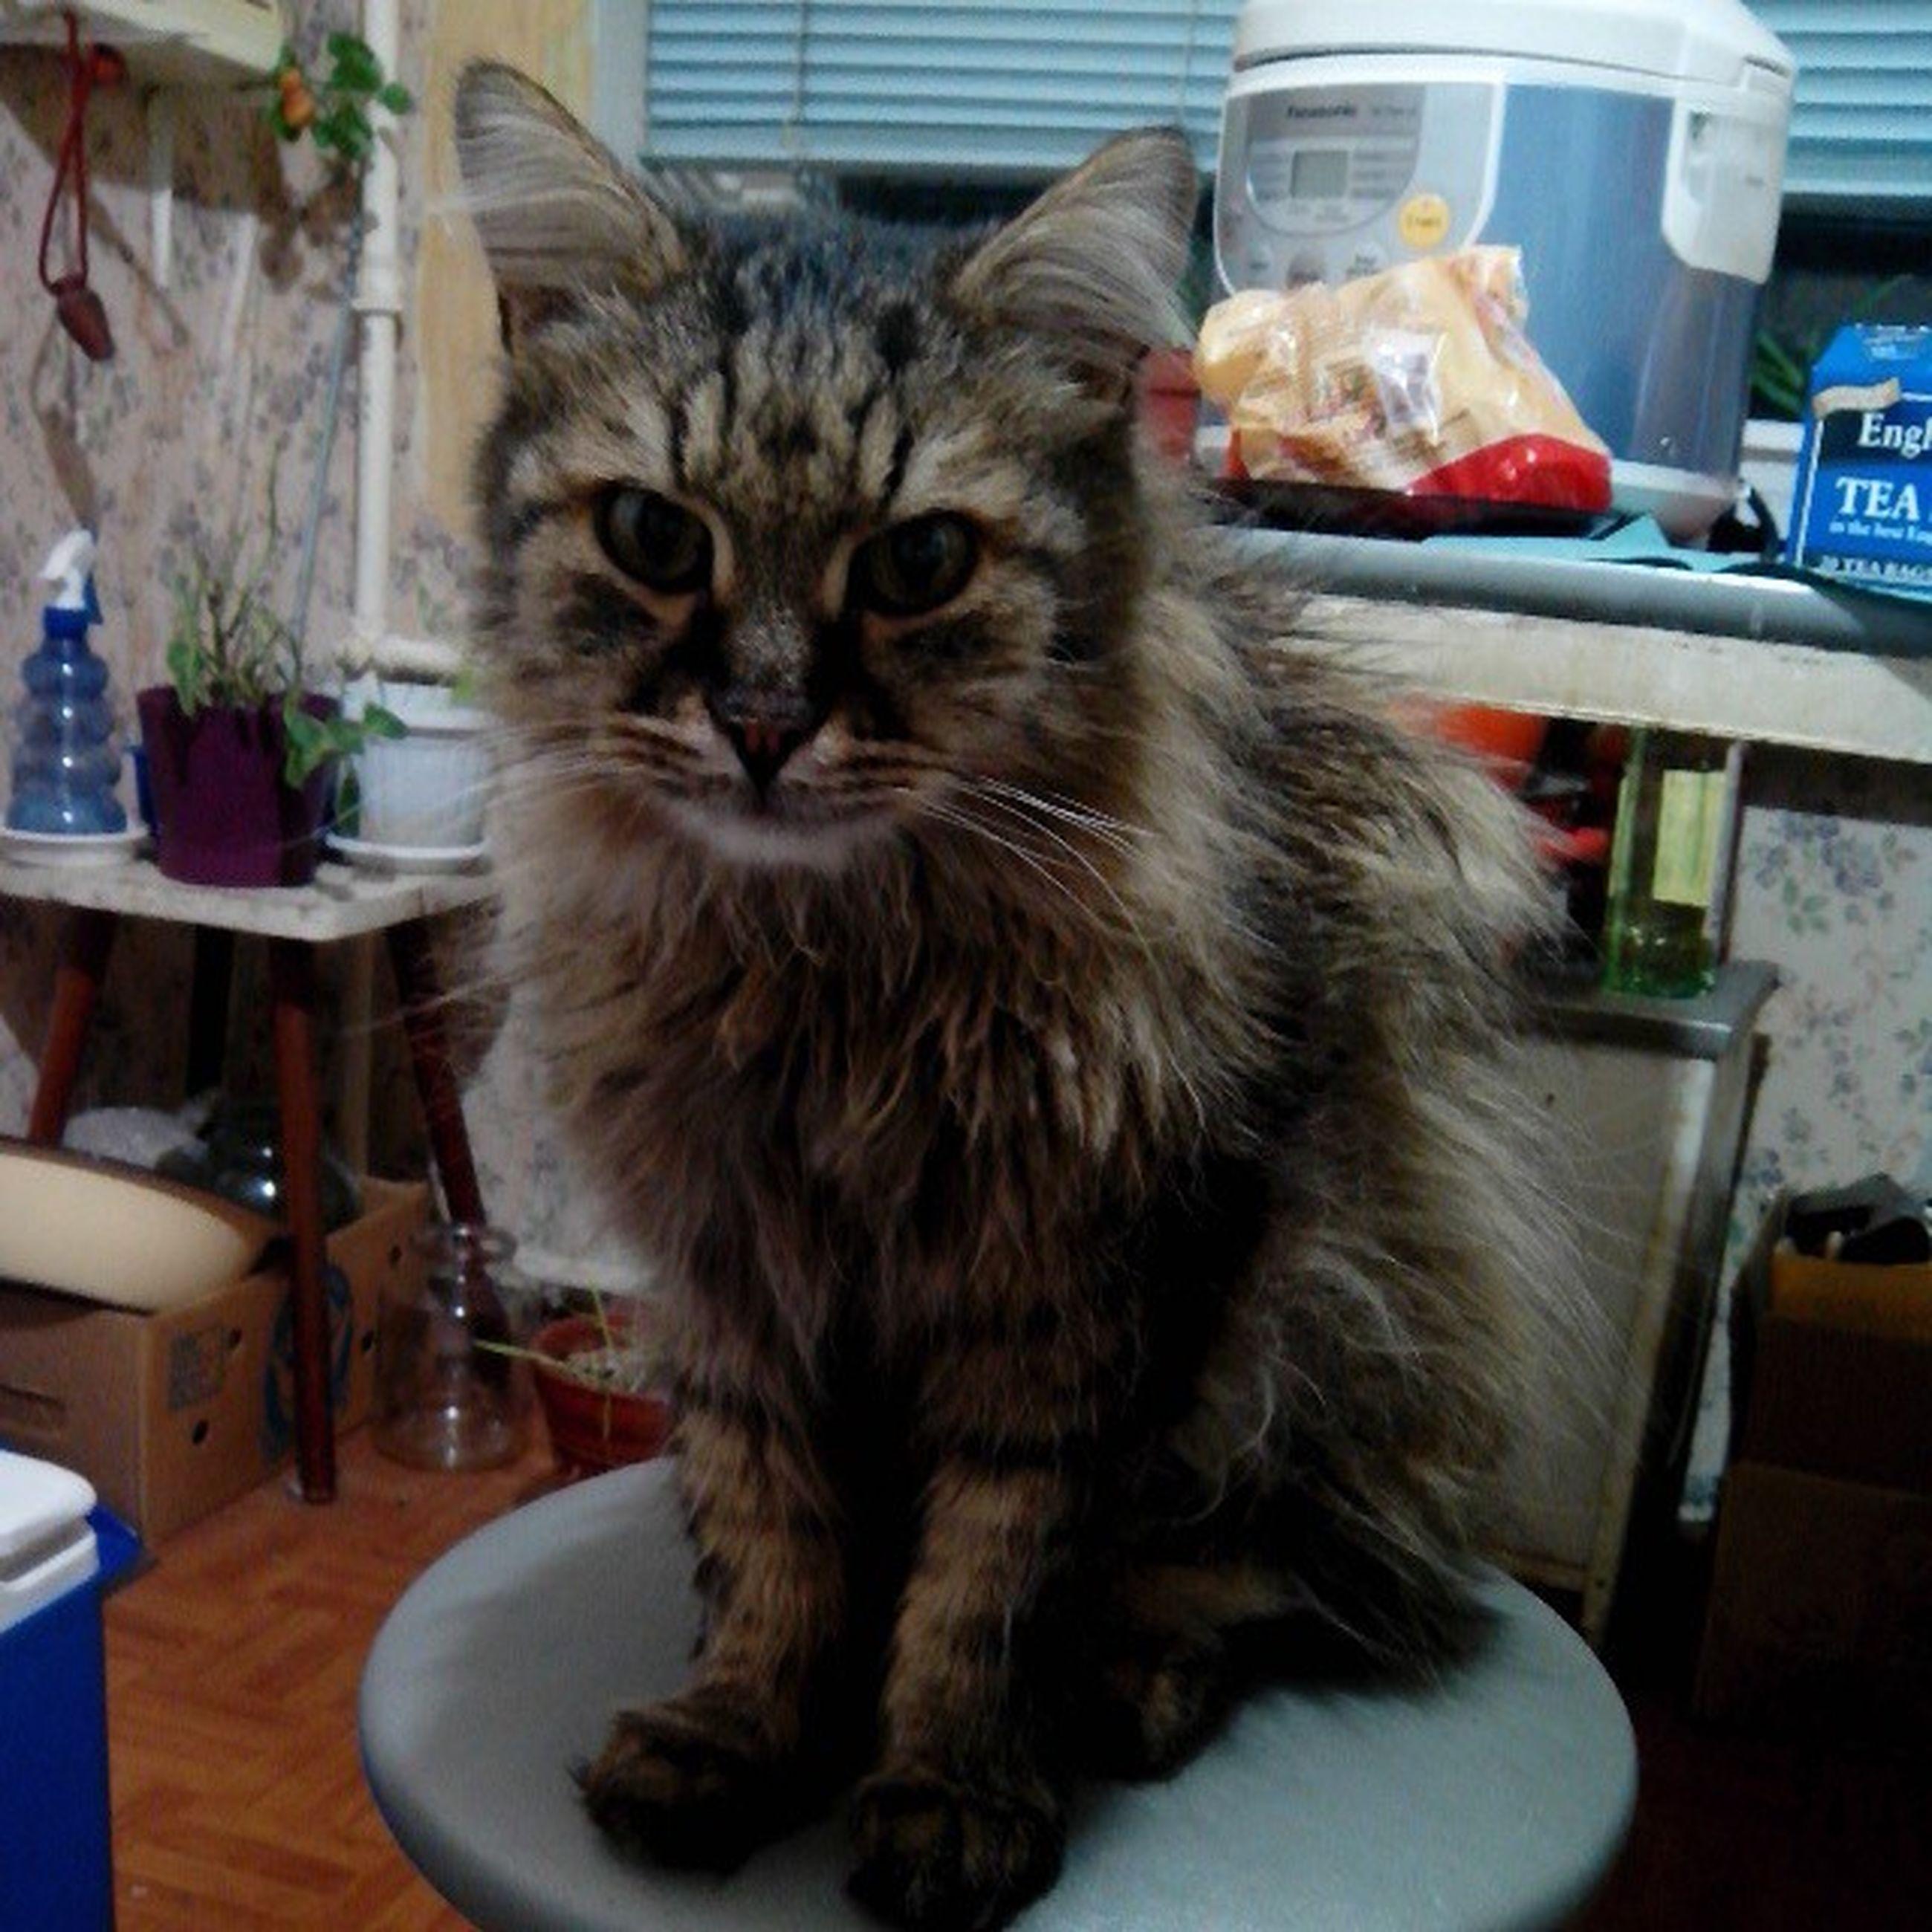 indoors, domestic cat, pets, domestic animals, cat, animal themes, one animal, table, mammal, feline, whisker, home interior, portrait, looking at camera, sitting, close-up, chair, home, no people, food and drink